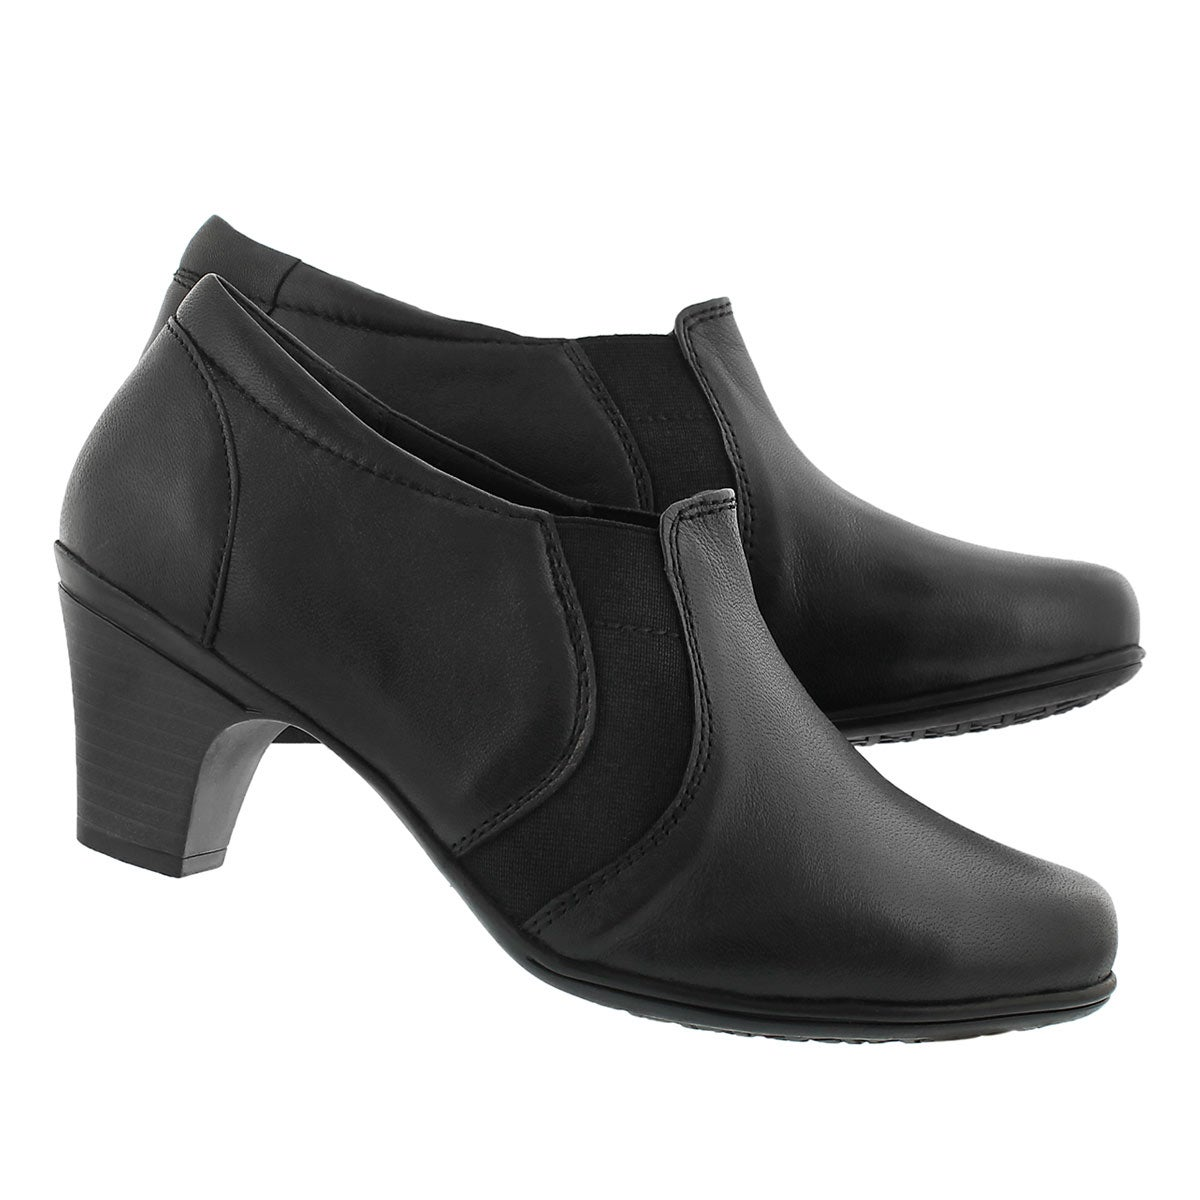 Lds Daz black low dress heel